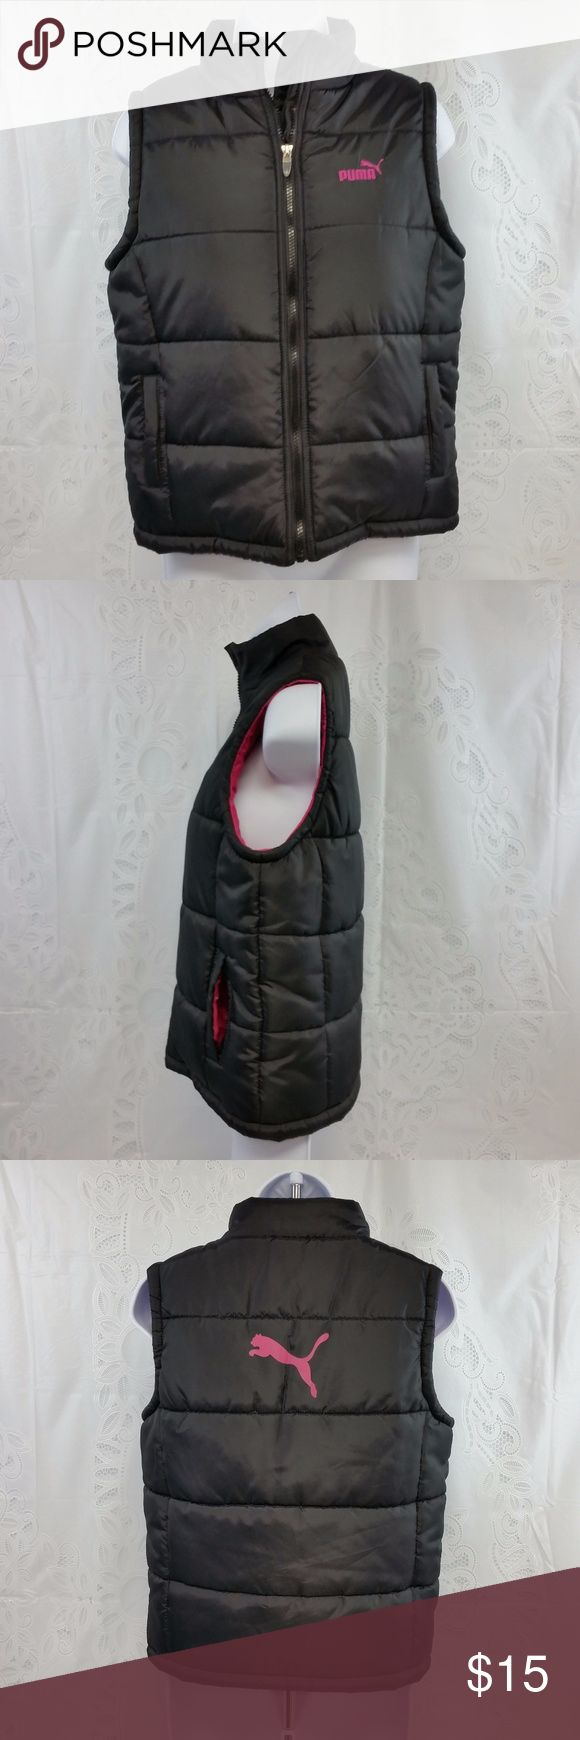 Puma Sport Girls XL Black Pink Puffer Jacket Vest It does have some loose strings.  It is a size XL in girls. It is 100% polyester. Measurements are shown in the last two pictures.  Let me know if you have any questions. :) Puma Jackets & Coats Puffers